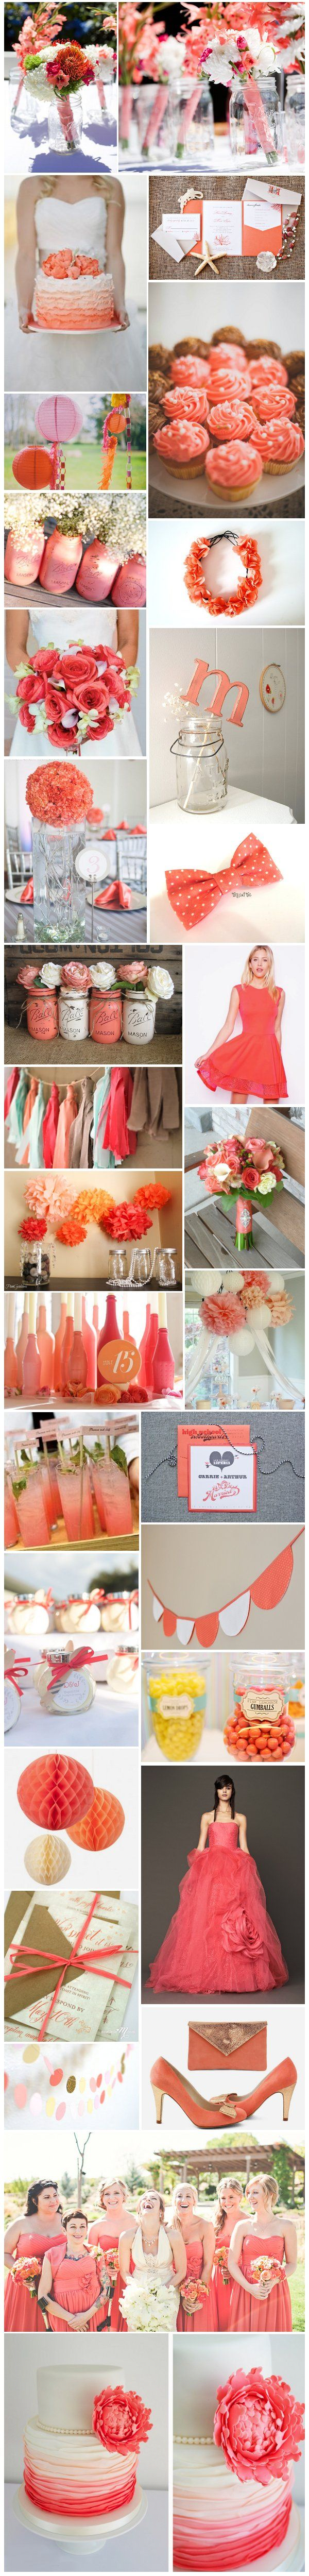 [Inspiration] Mariage corail